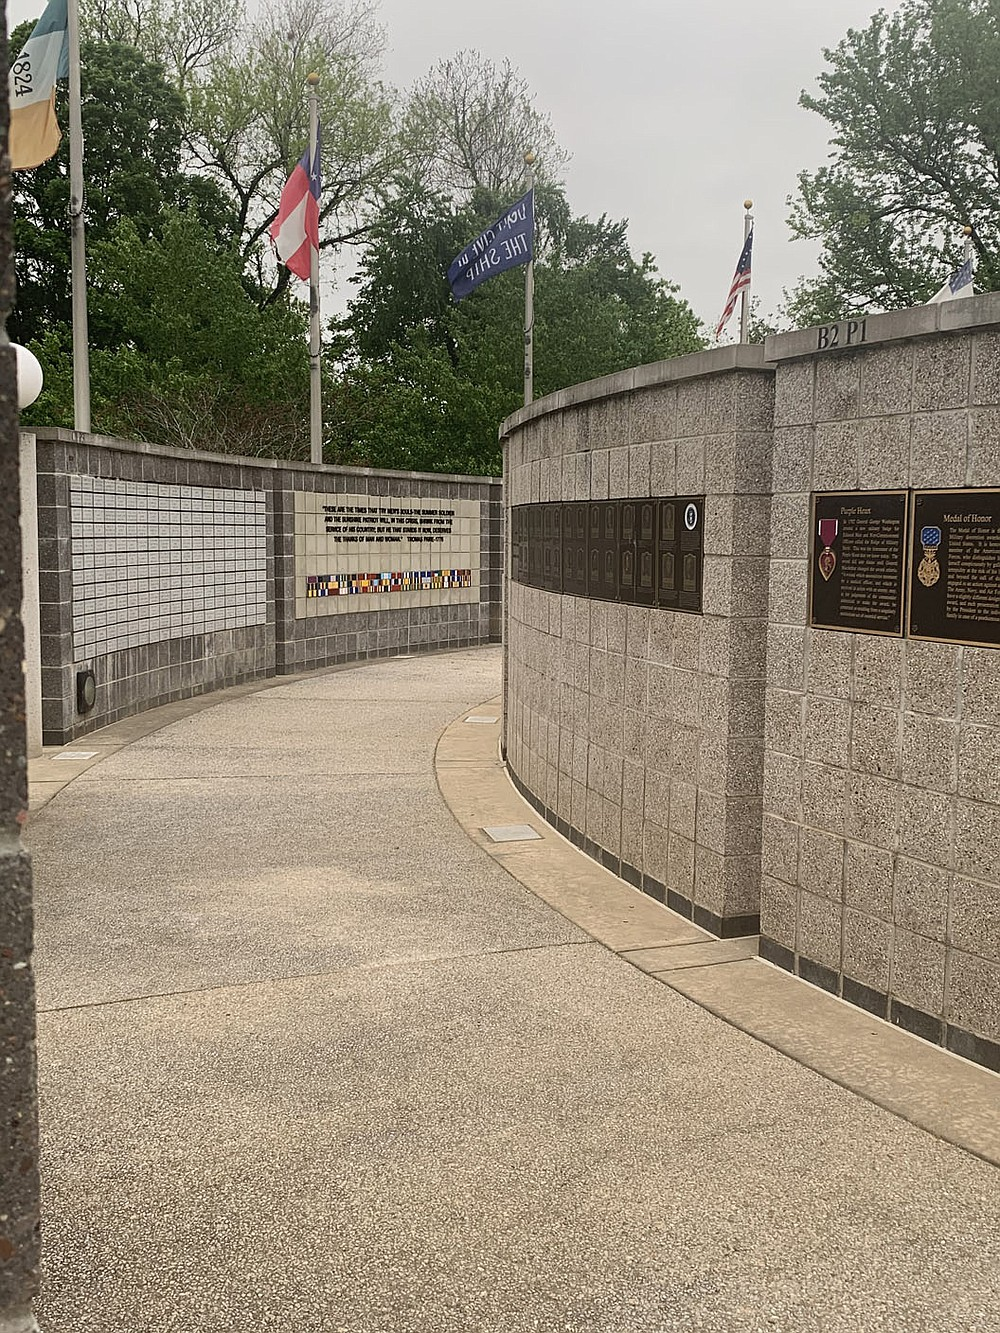 Photo by Sally Carroll/Special to The Weekly Vista The Veterans Wall of Honor, located at 103 Veterans Way in Bella Vista, offers solace and comfort to all who visit, said Lisa Watten, whose father served as architect for the project.